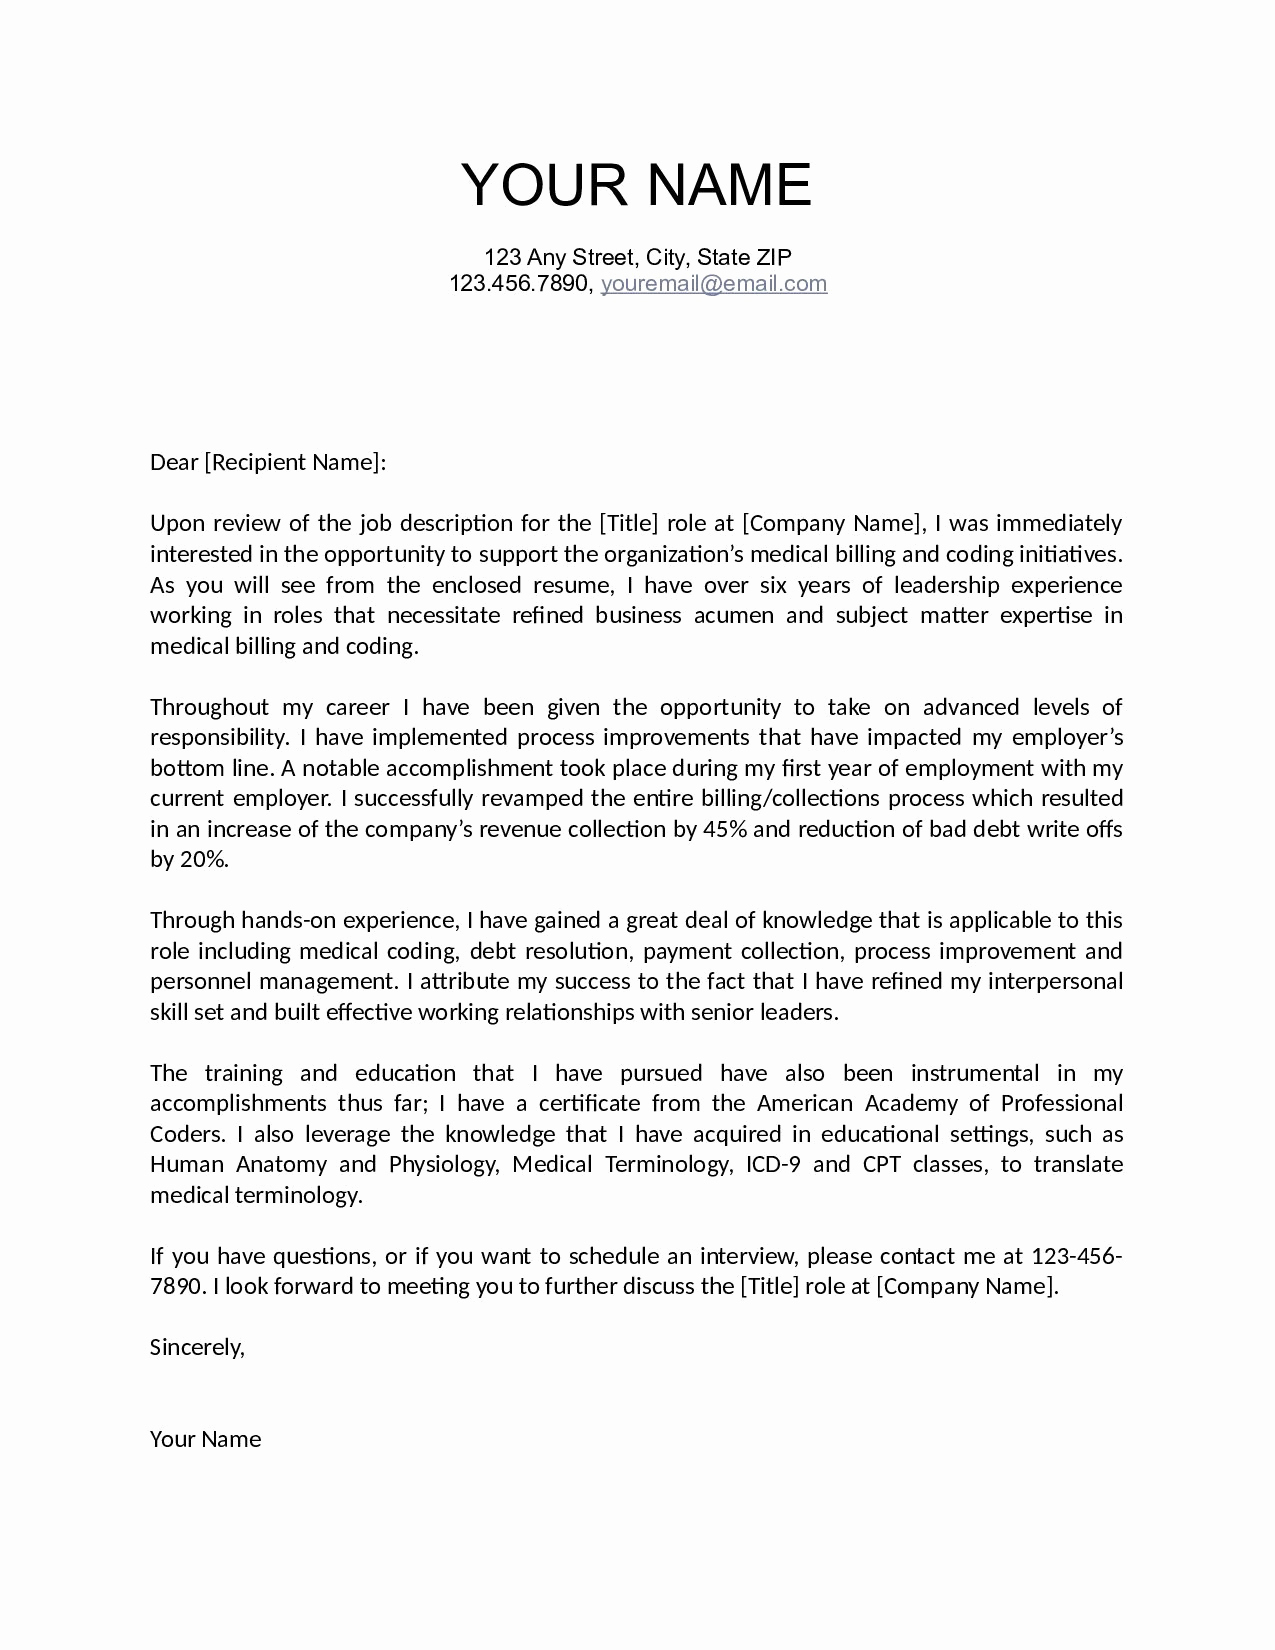 Resignation Letter Email Template Samples | Letter Cover Templates